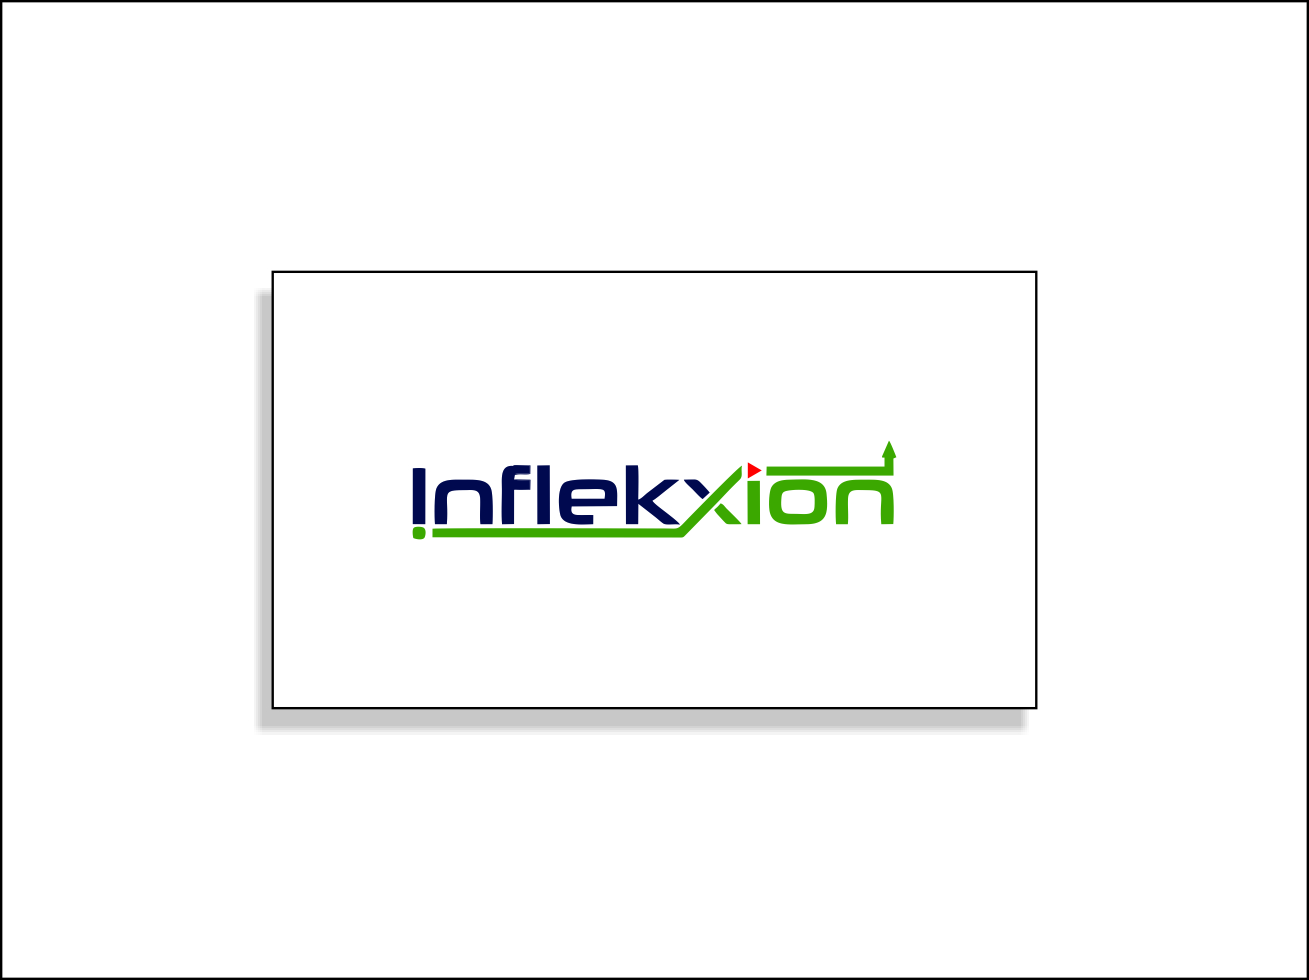 Logo Design by Agus Martoyo - Entry No. 87 in the Logo Design Contest Professional Logo Design for Inflekxion.